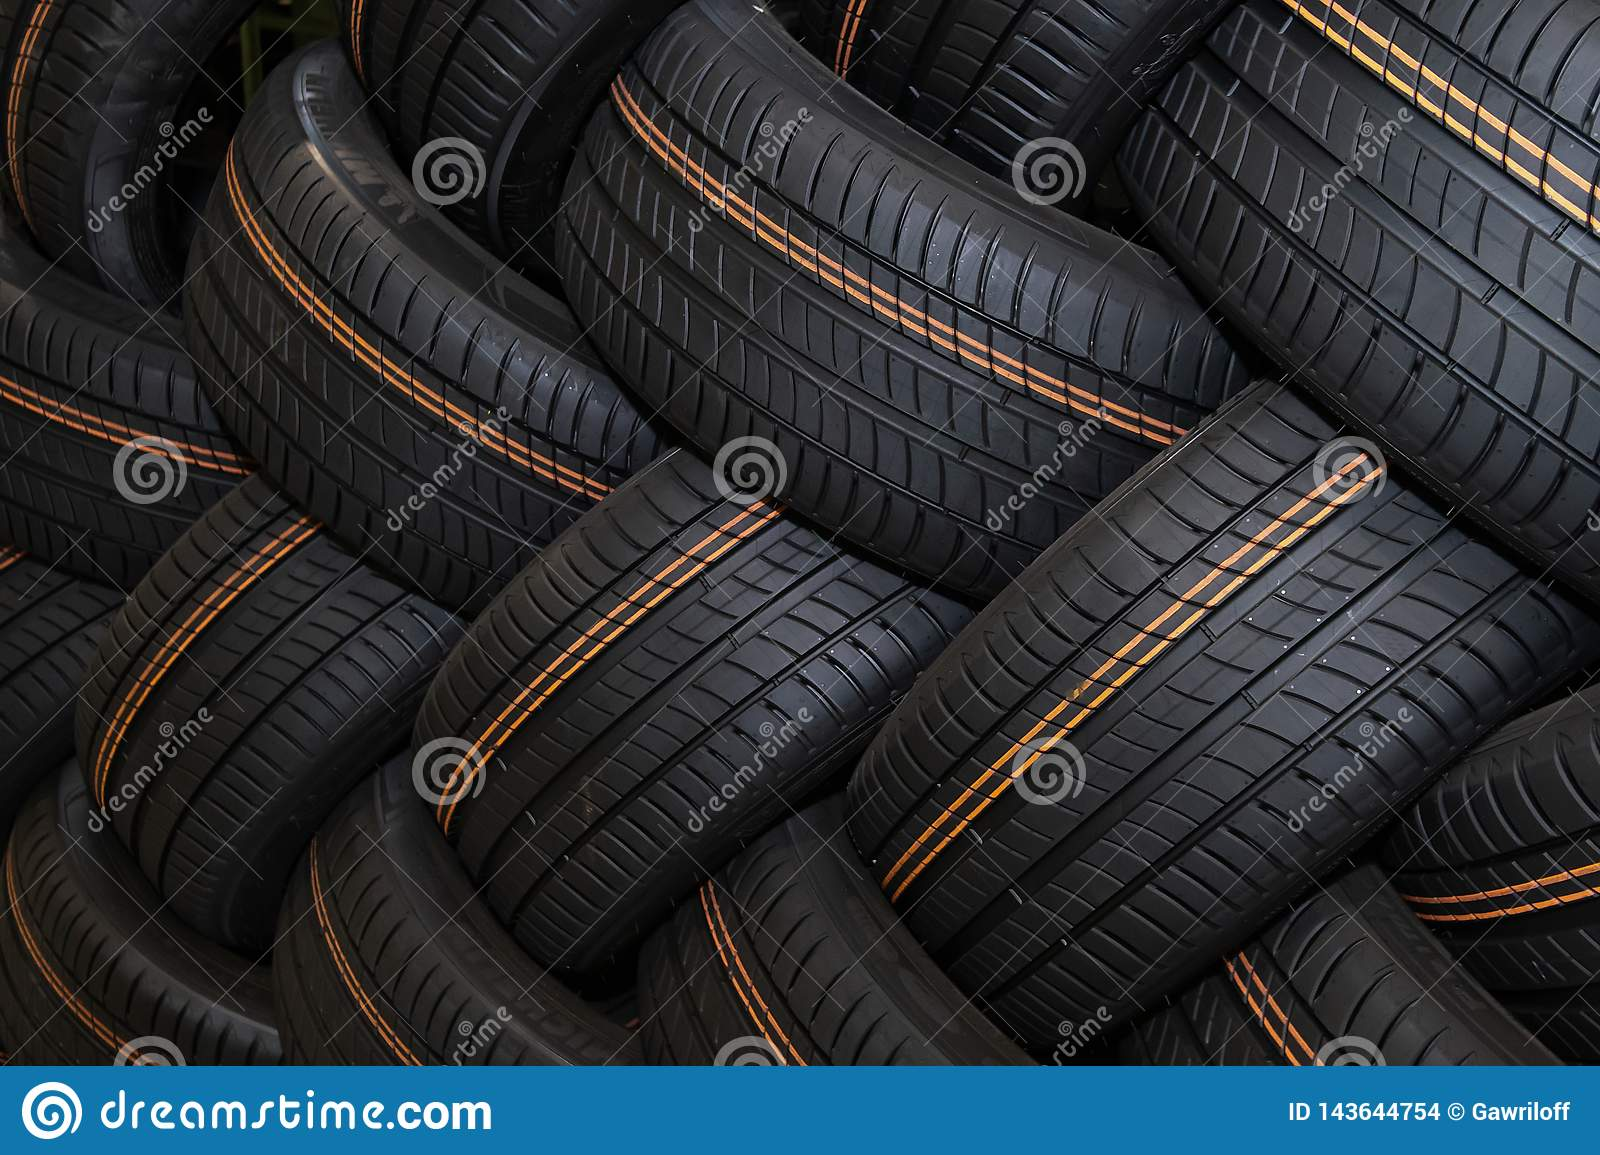 Moscow, Russia - January 14, 2019: Winter car tyre  brand  of the company Michelin. Michelin is a famous tyre manufacturer based